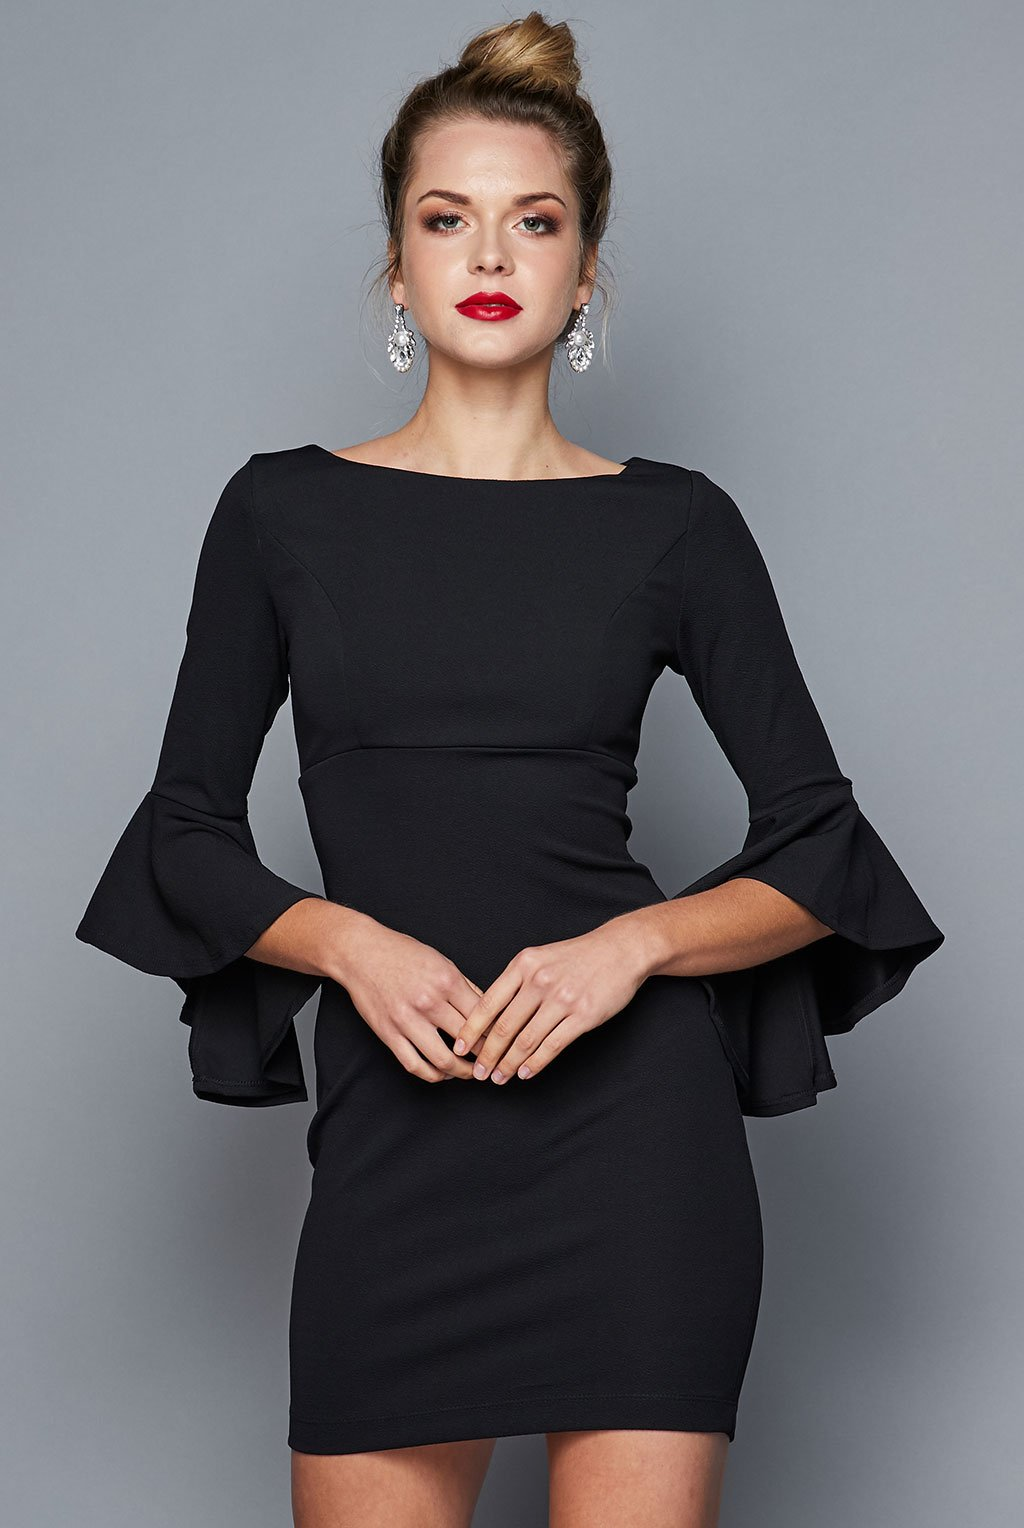 Teeze Me | Ruffle Sleeve Sheath Dress | Black - Teeze Me